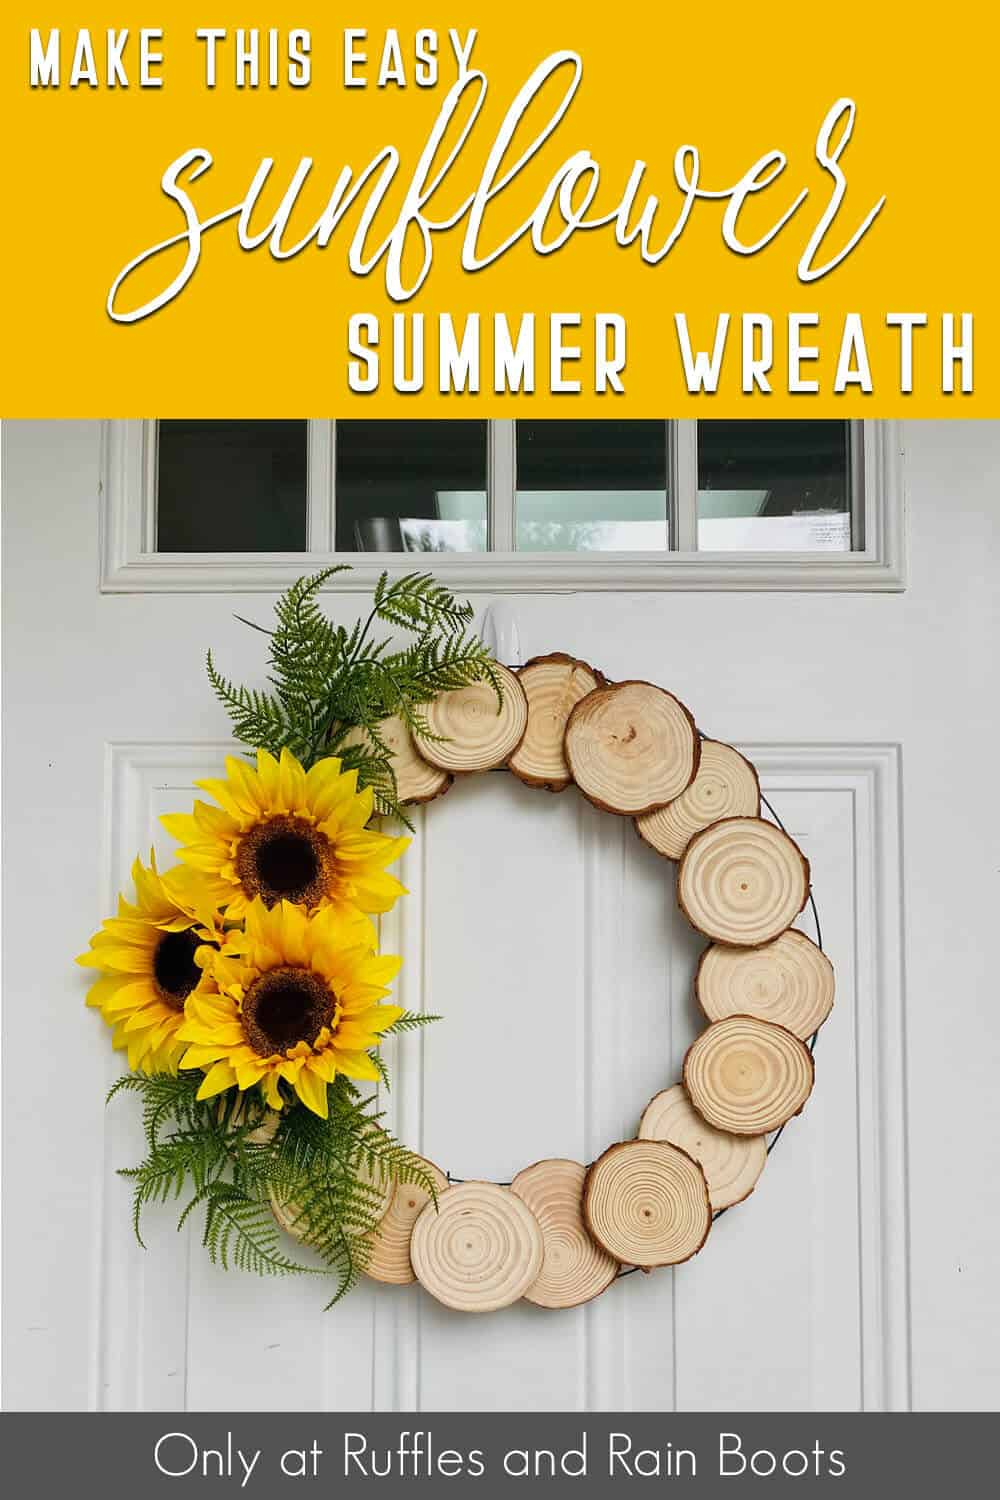 wood round sunflower wreath with text which reads make this easy sunflower summer wreath